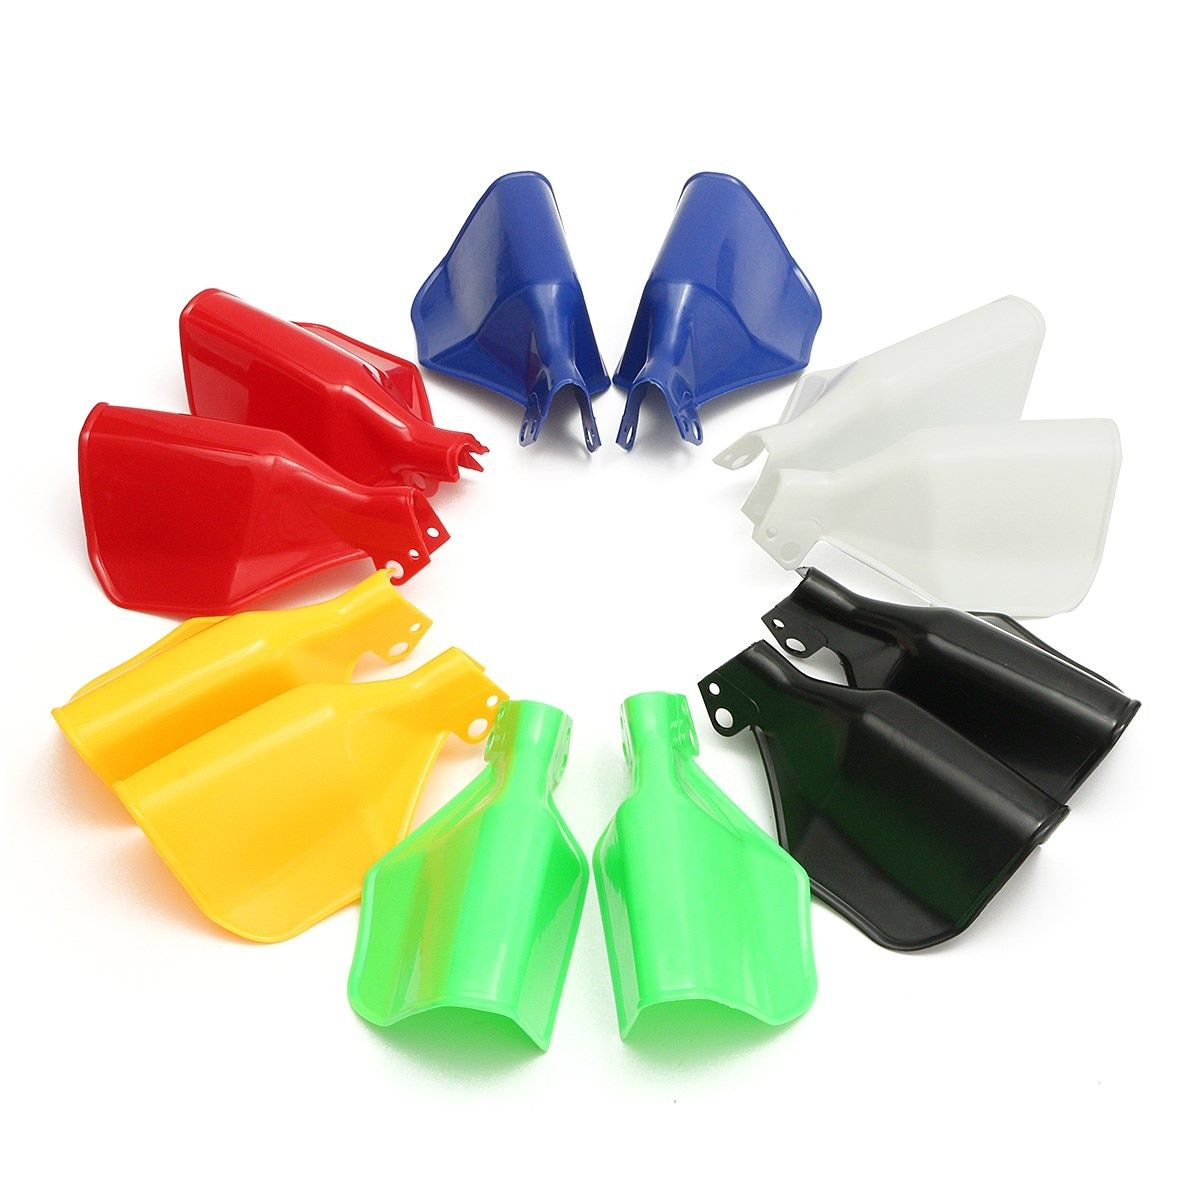 1 Pair 6 Colors Universal Fit Protector Protection Handguard Hand Guard Motorcycle Scooter